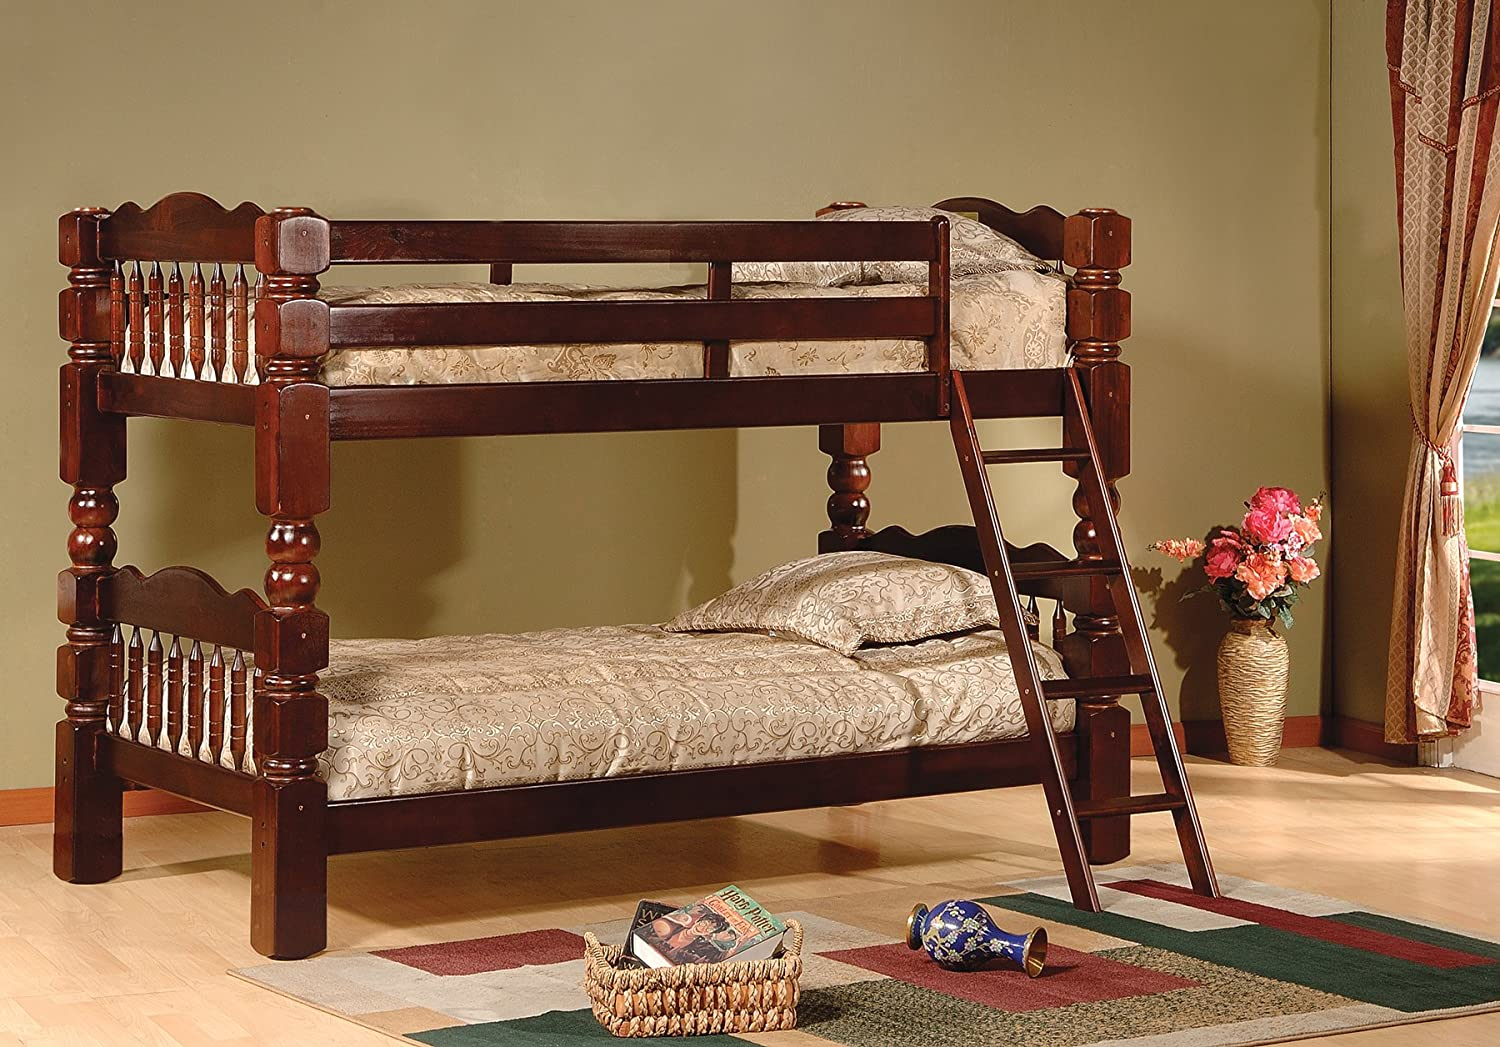 King s Brand Wood Convertible Bunk Bed, Twin, Cherry Finish